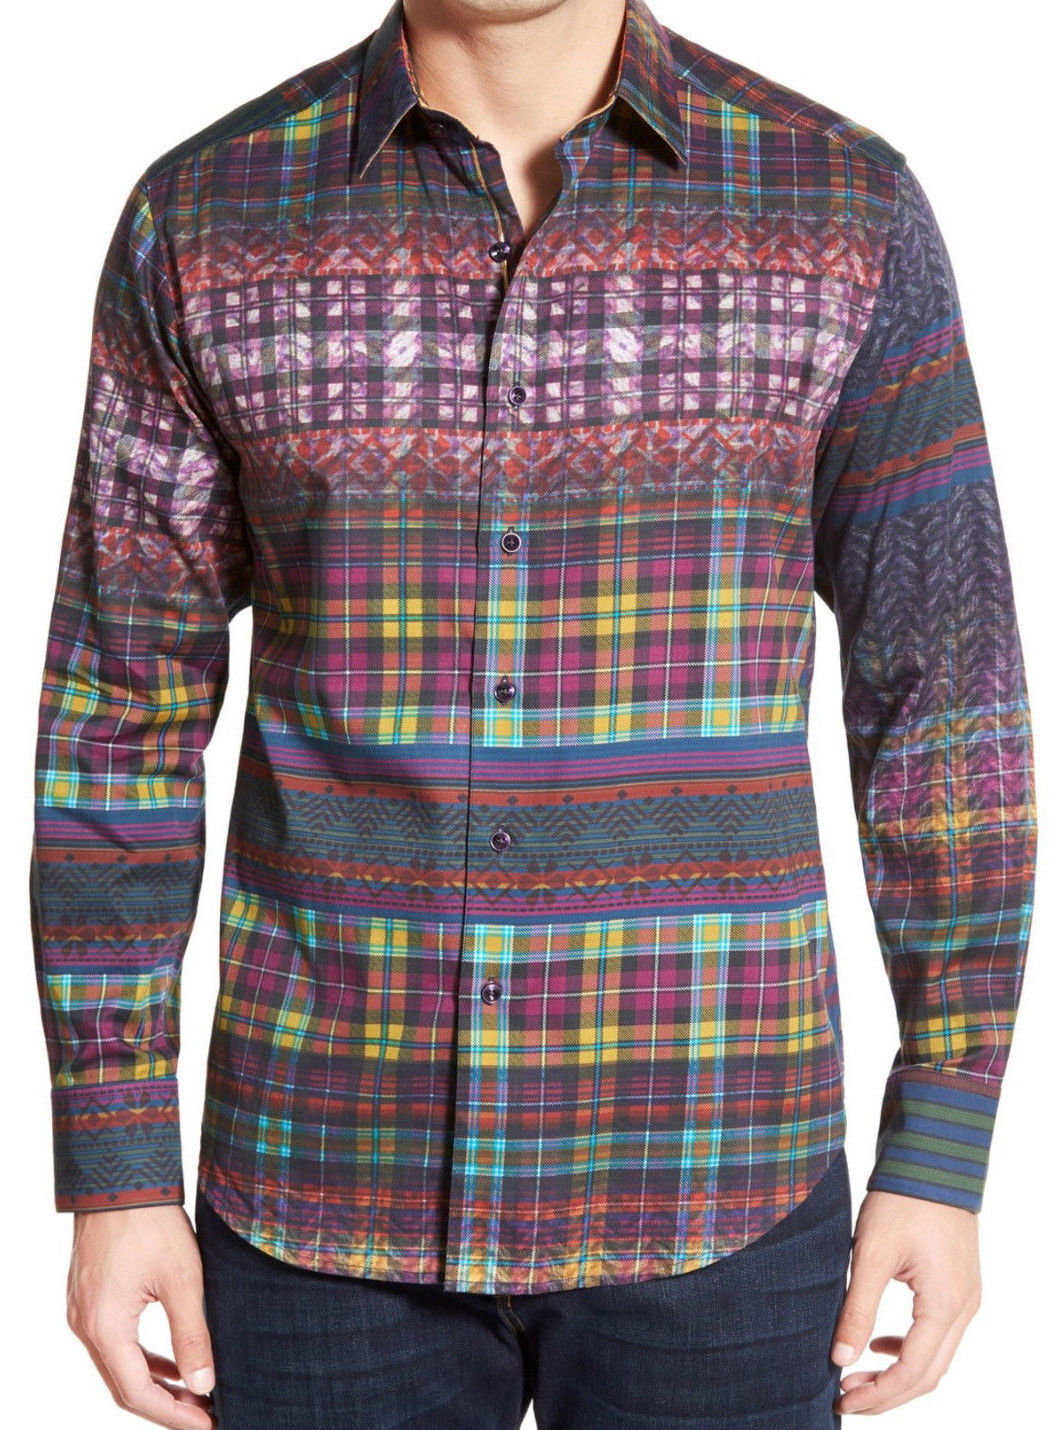 Robert Graham 'Kilt' Tartan Print Sport Shirt, Cotton, L S, XL,  NWT